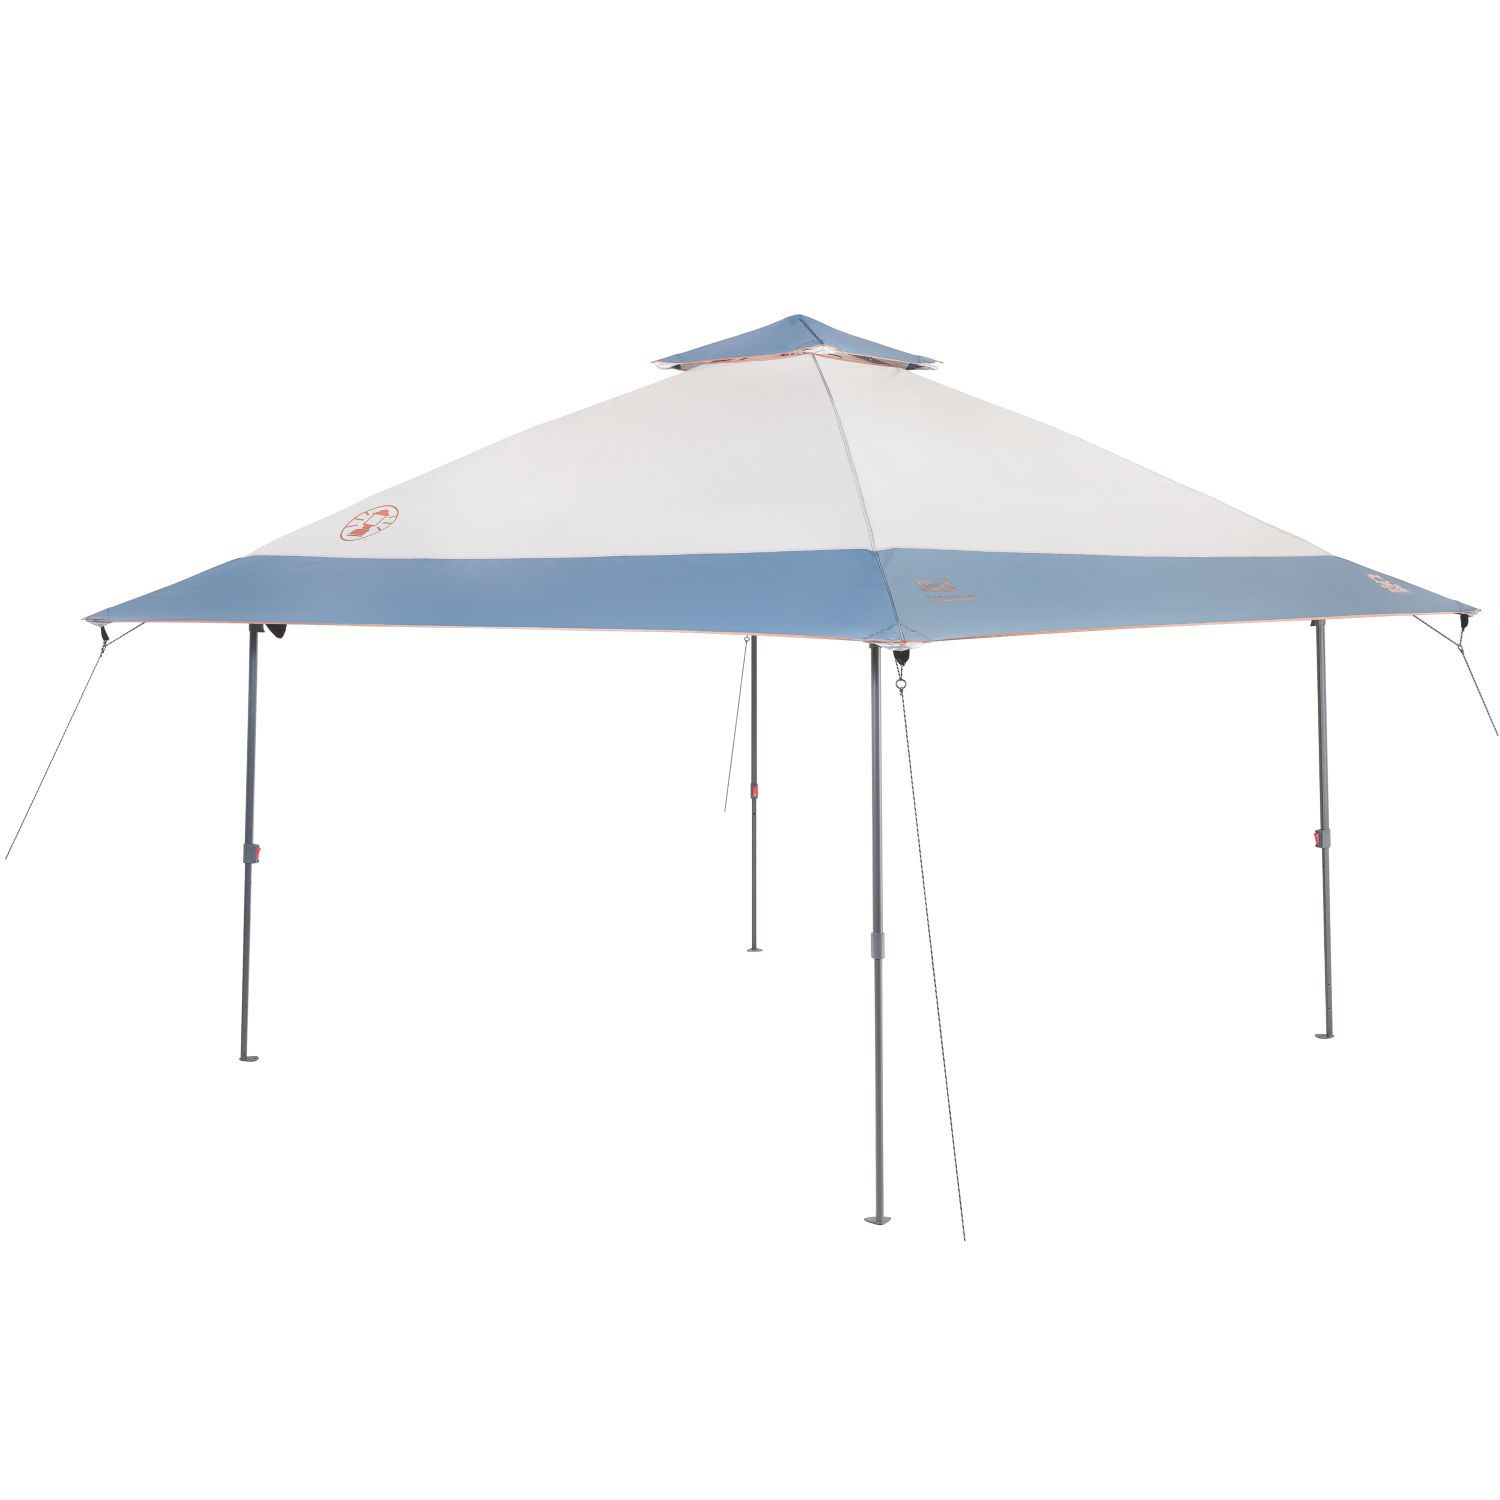 Coleman All Night Lighted Eaved Shelter (13u0027 x 13u0027)  sc 1 st  Kohlu0027s & All Night Lighted Eaved Shelter (13u0027 x 13u0027)